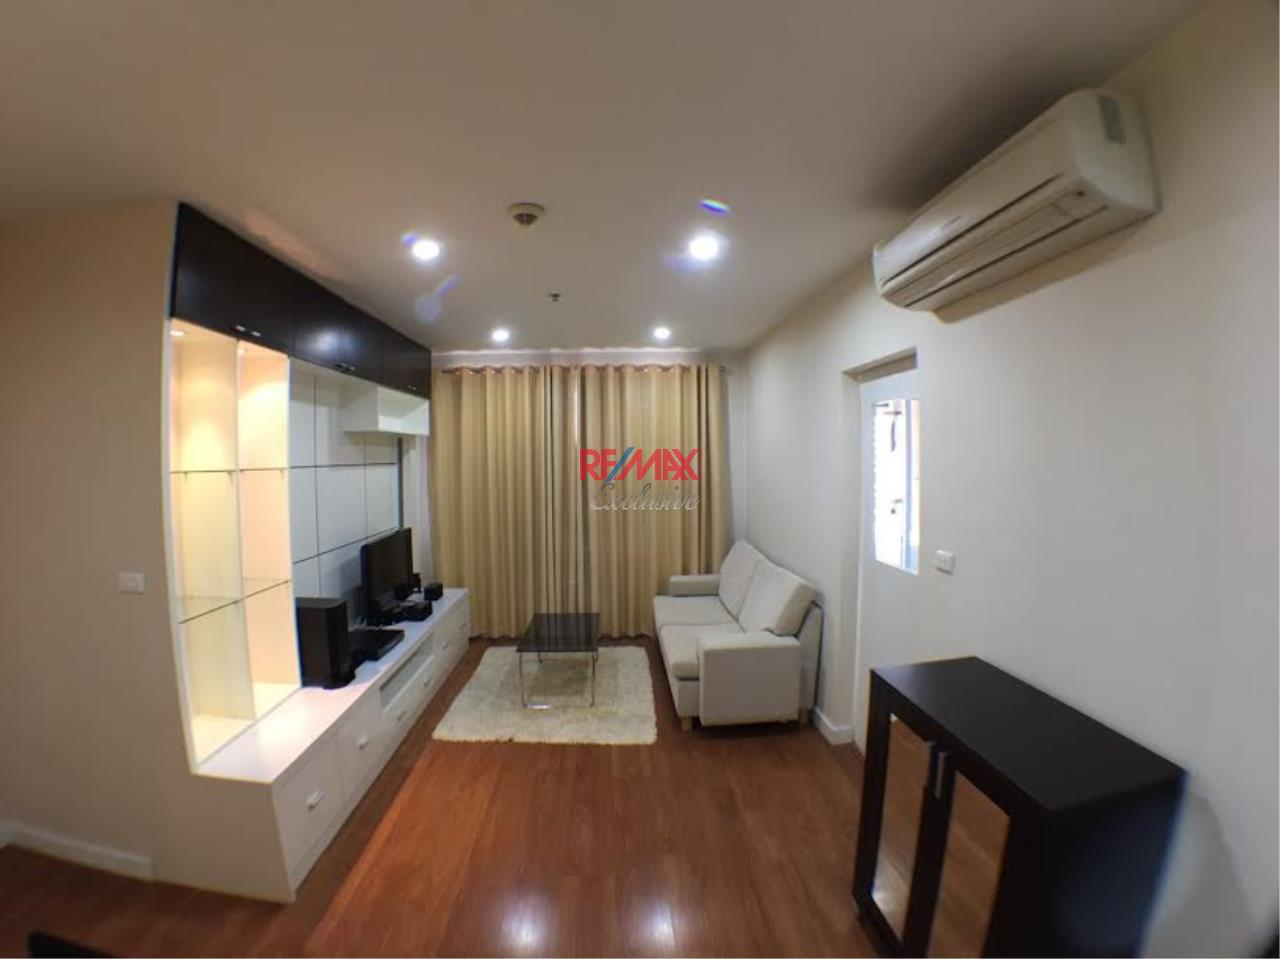 RE/MAX Exclusive Agency's 1 Bedroom at Condo One X Sukhumvit 26 For Rent 30,000 THB 2